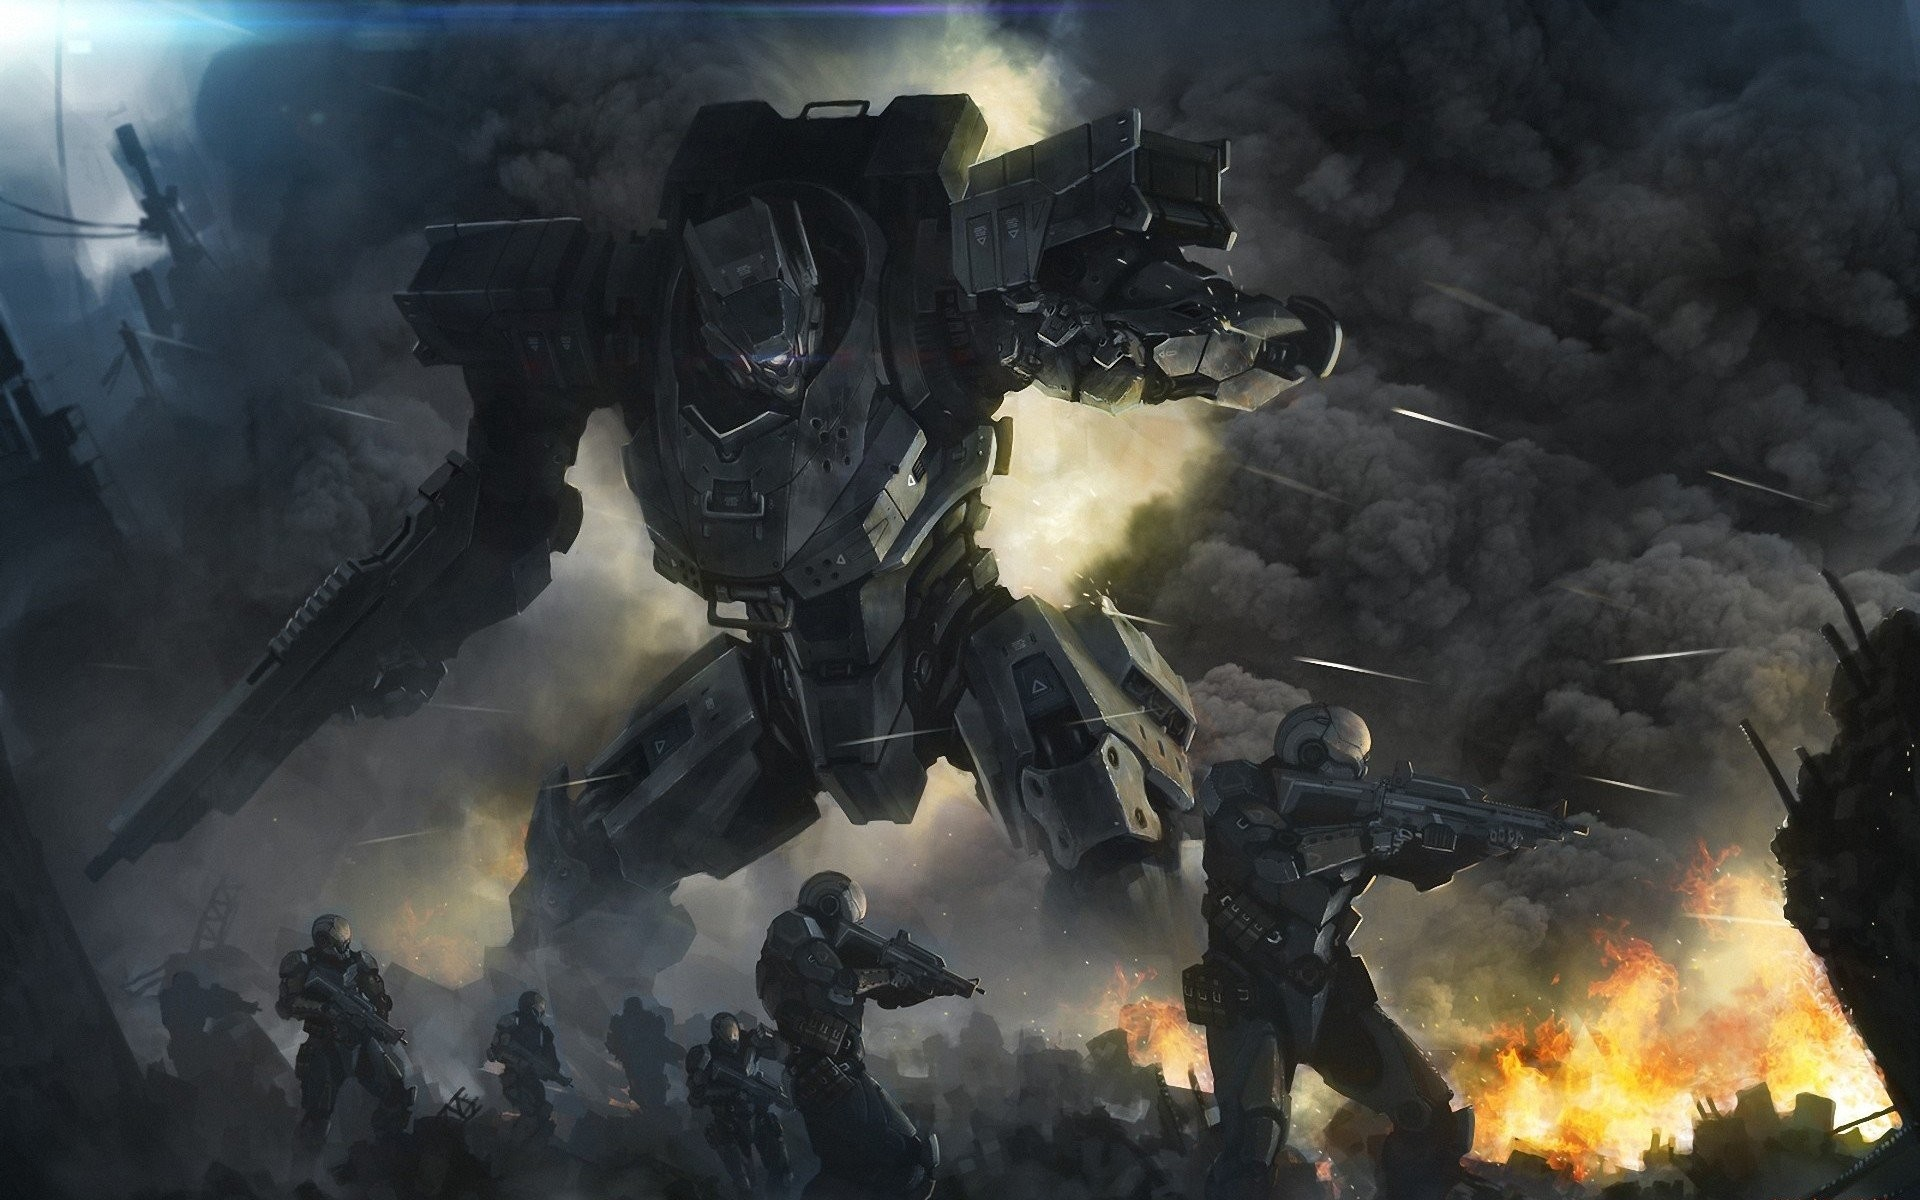 Love me some Armored Core.